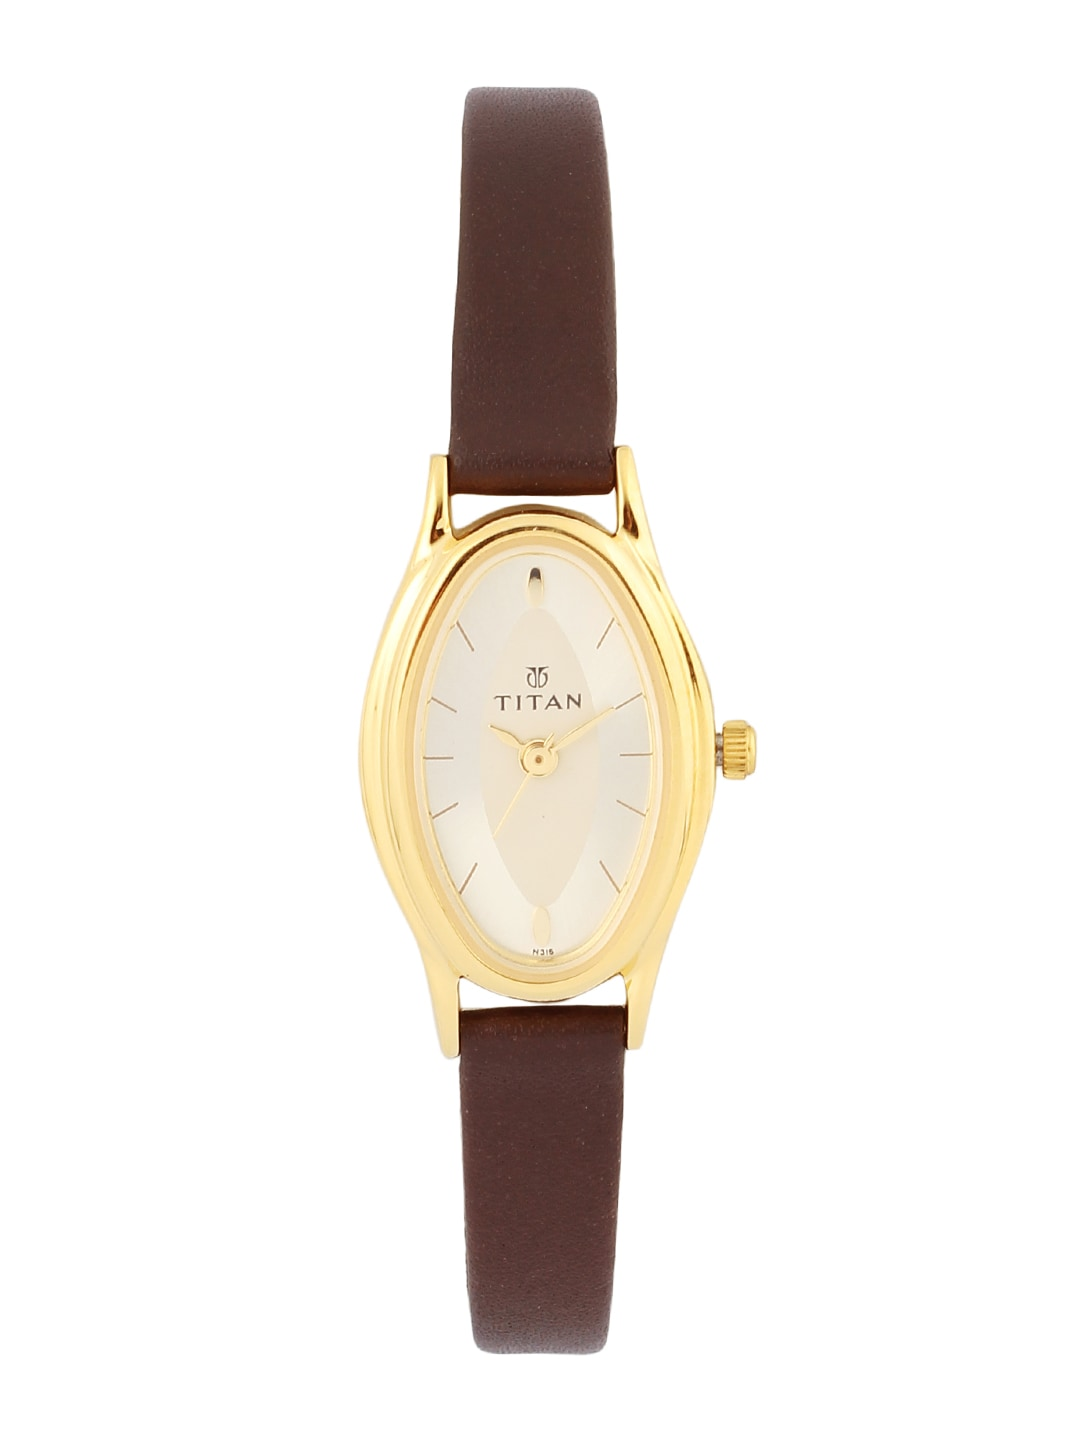 Titan Gold Watches For Women